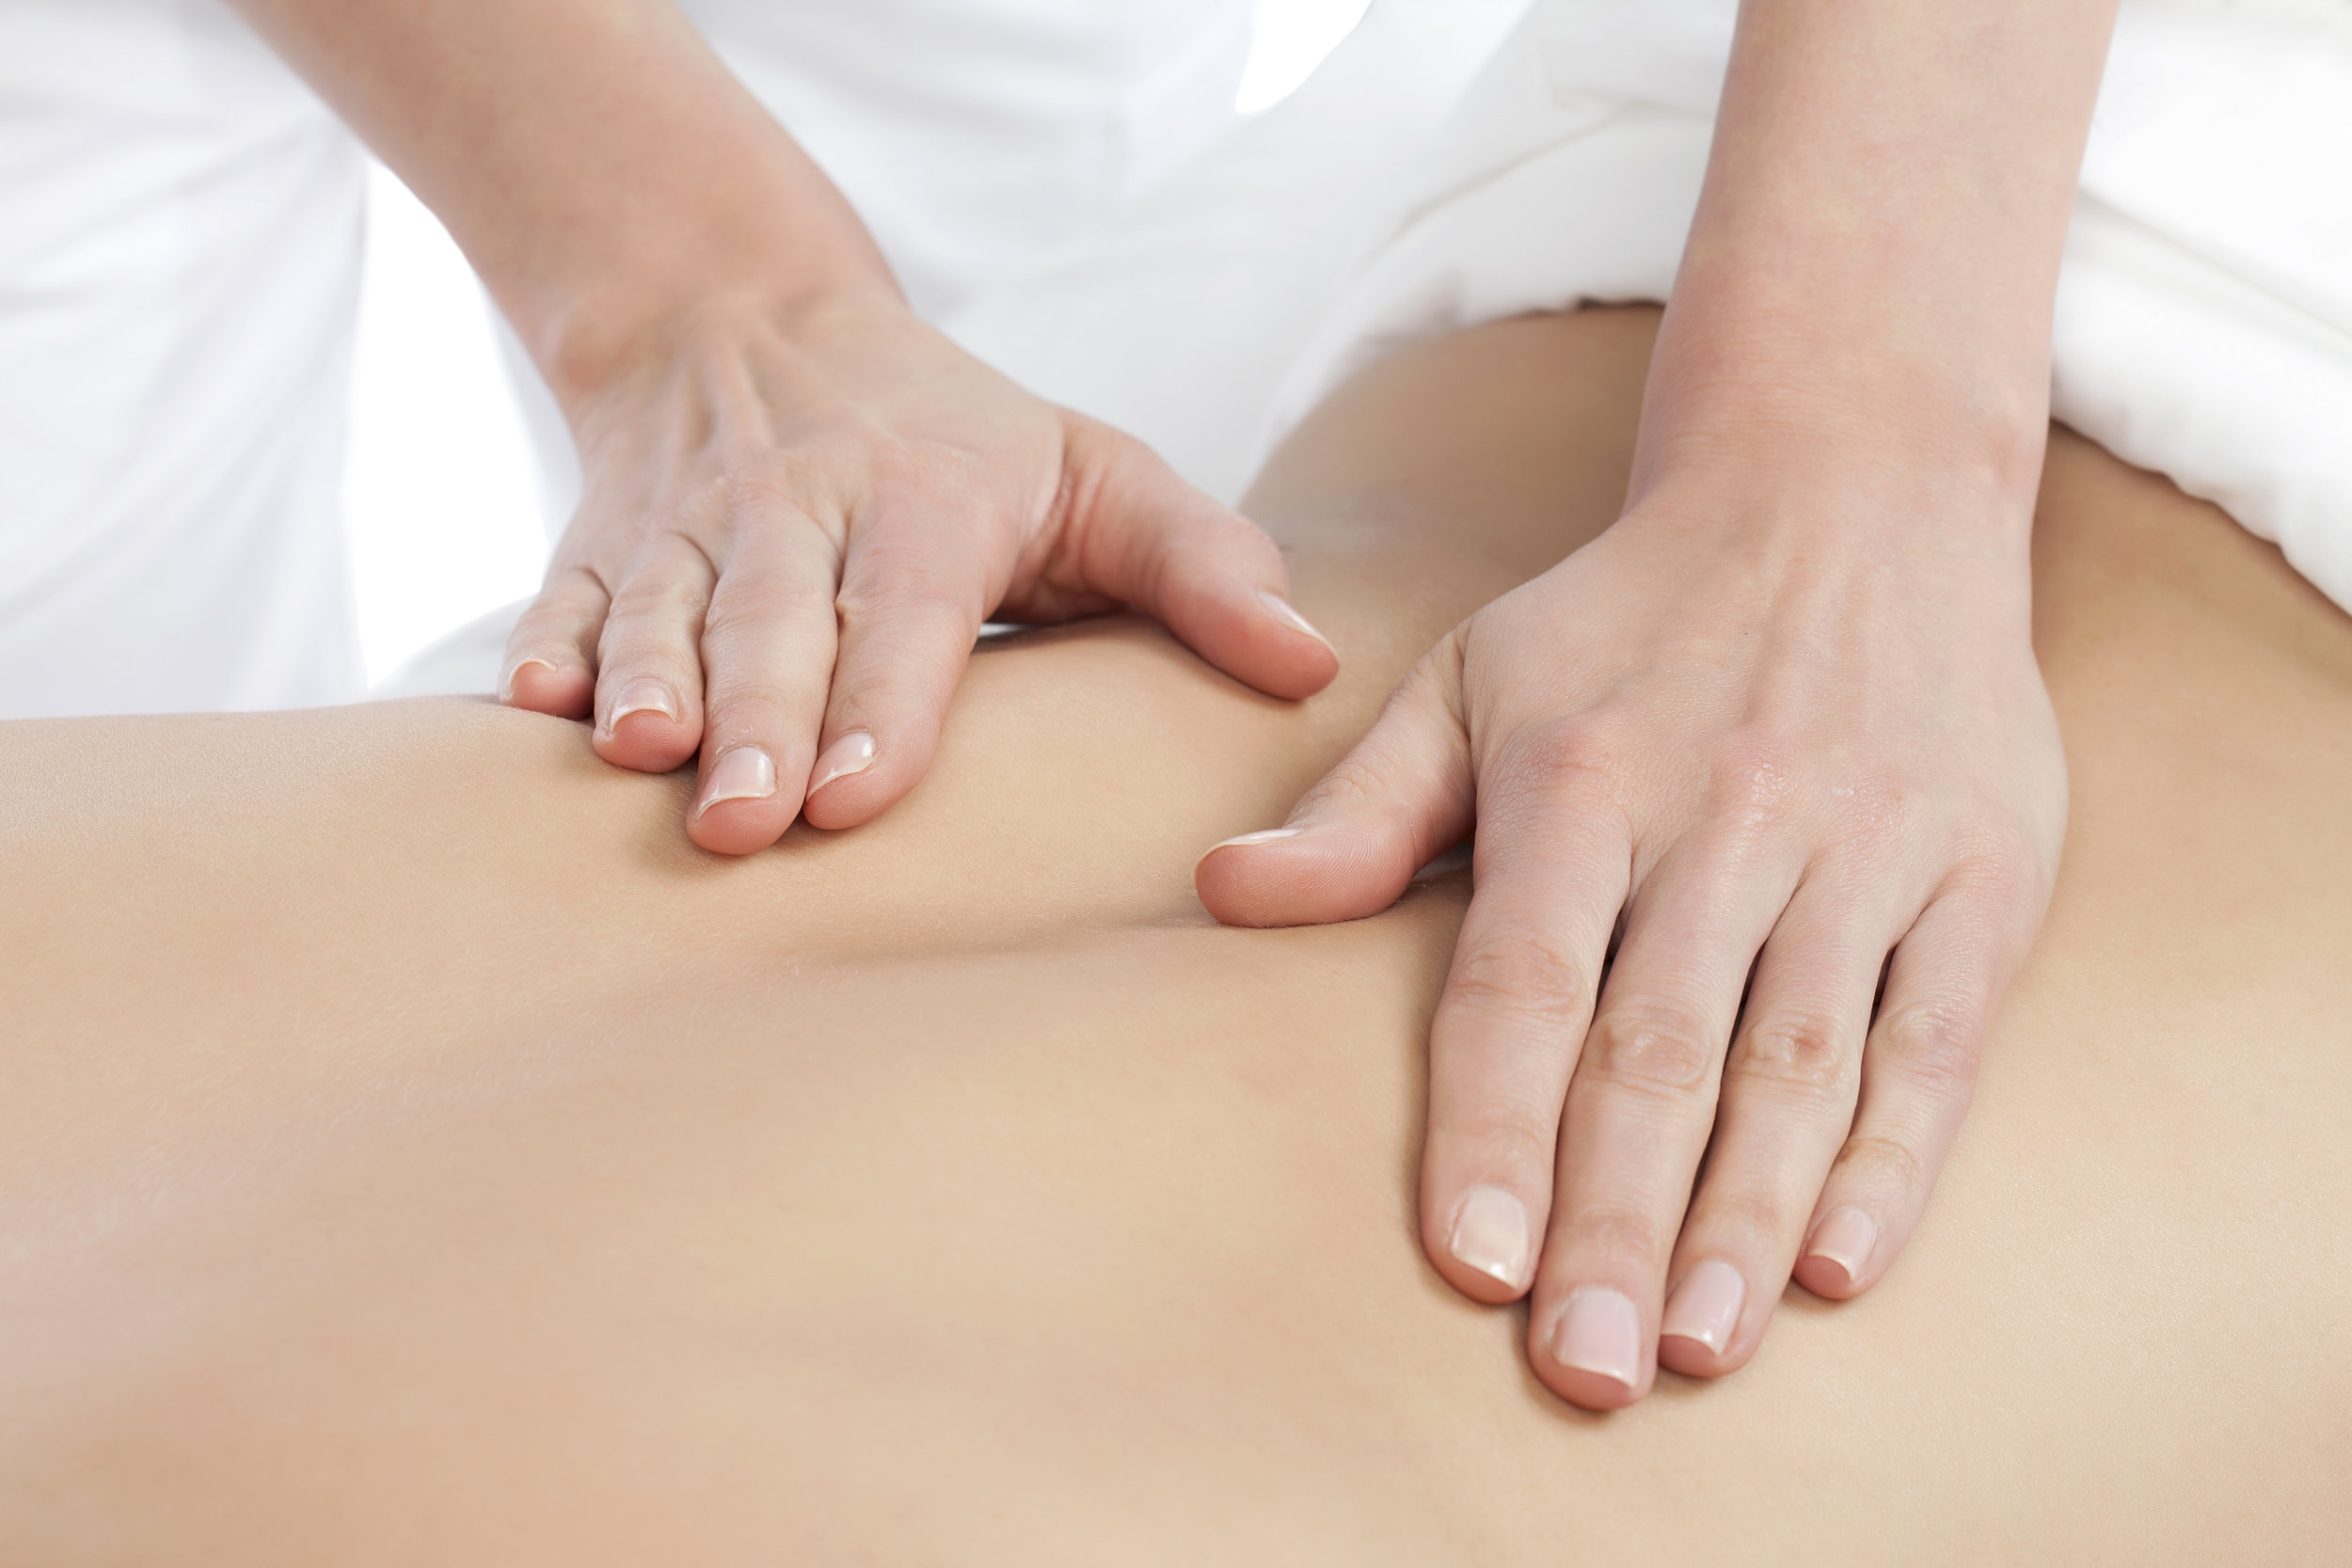 Massage Therapy - We offer various massage therapy techniques to fit your needs. Massage therapy works on relaxing tight muscles and puts your body into a state of relaxation. It is great for activating the lymphatic system of the body to promote purification and fluid release. Circulation is increased as well as an overall feeling of well being. When acupuncture and massage are combined, the effectiveness of both treatments becomes more powerful.